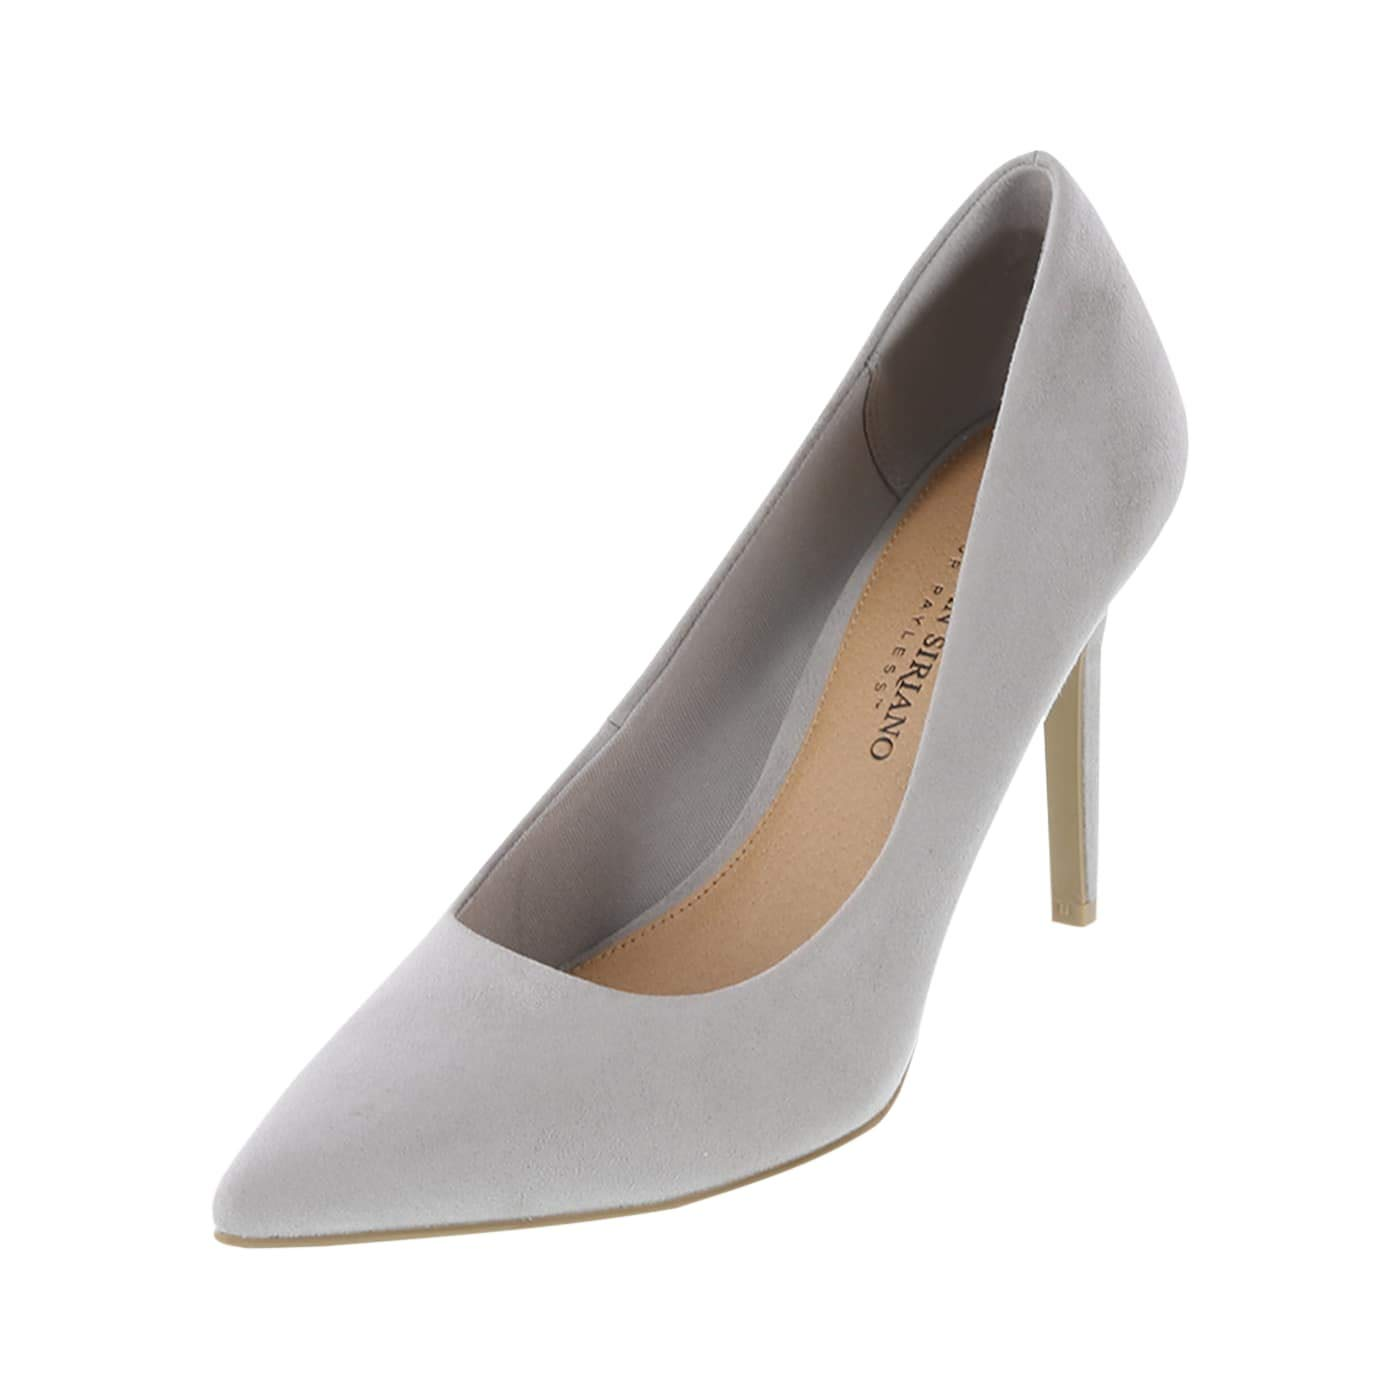 Amazoncom Christian Siriano For Payless Womens Habit Pointed